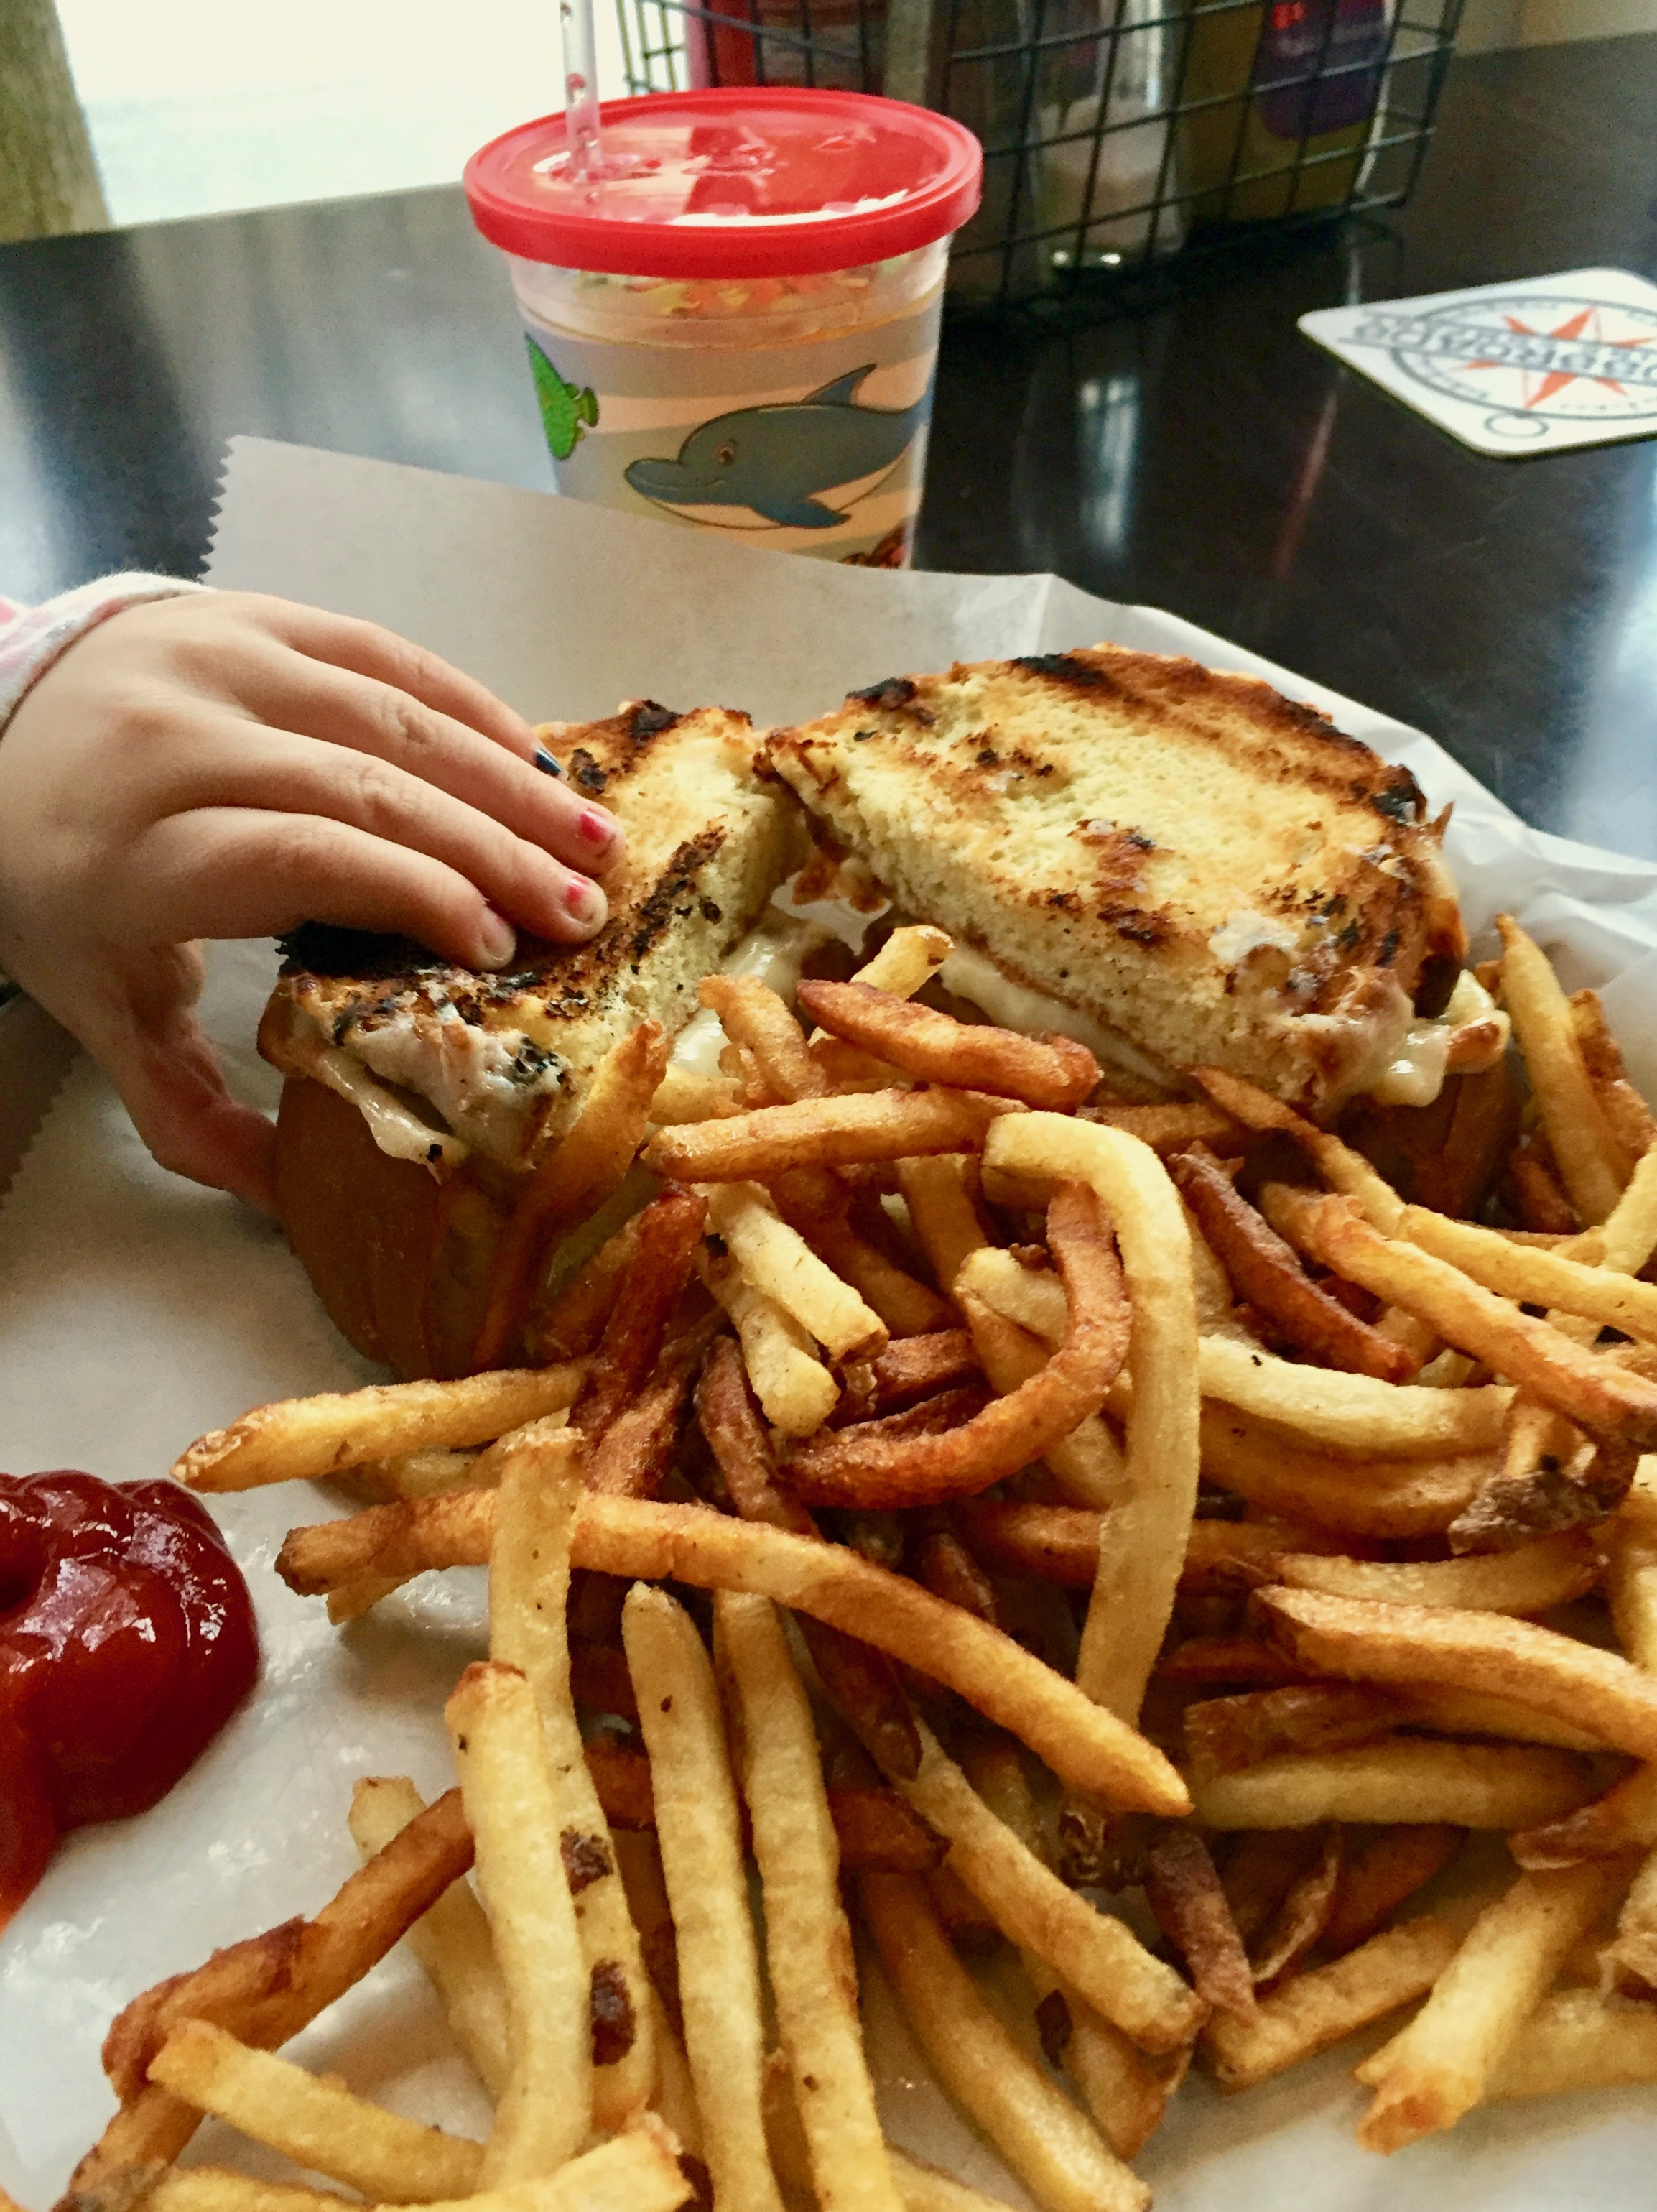 Grilled cheese and fries from the kids menu at Crossroads Brewing in Athens, NY